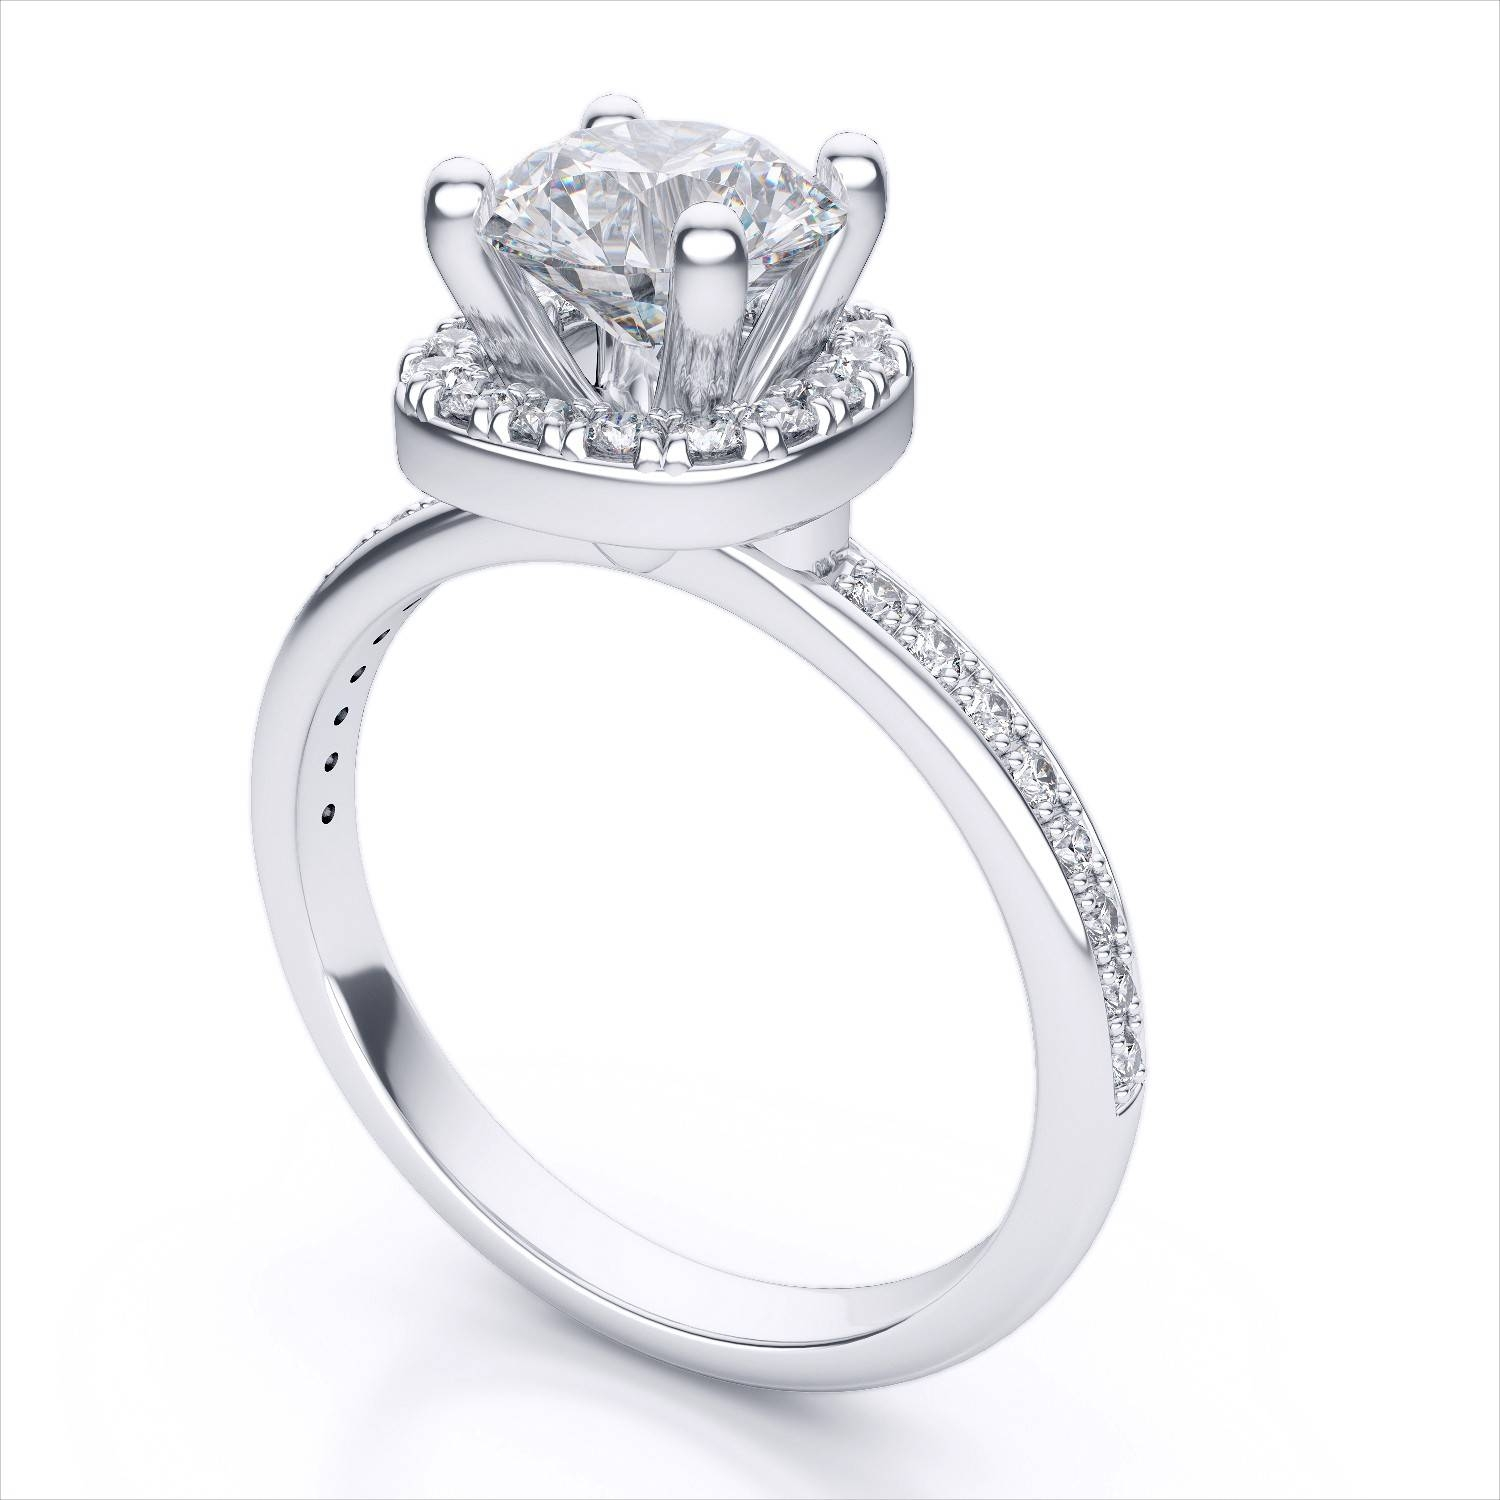 Vintage Halo Diamond Or Moissanite Engagement Ring Setting – Platinum With Regard To Platinum Wedding Rings Settings (View 15 of 15)